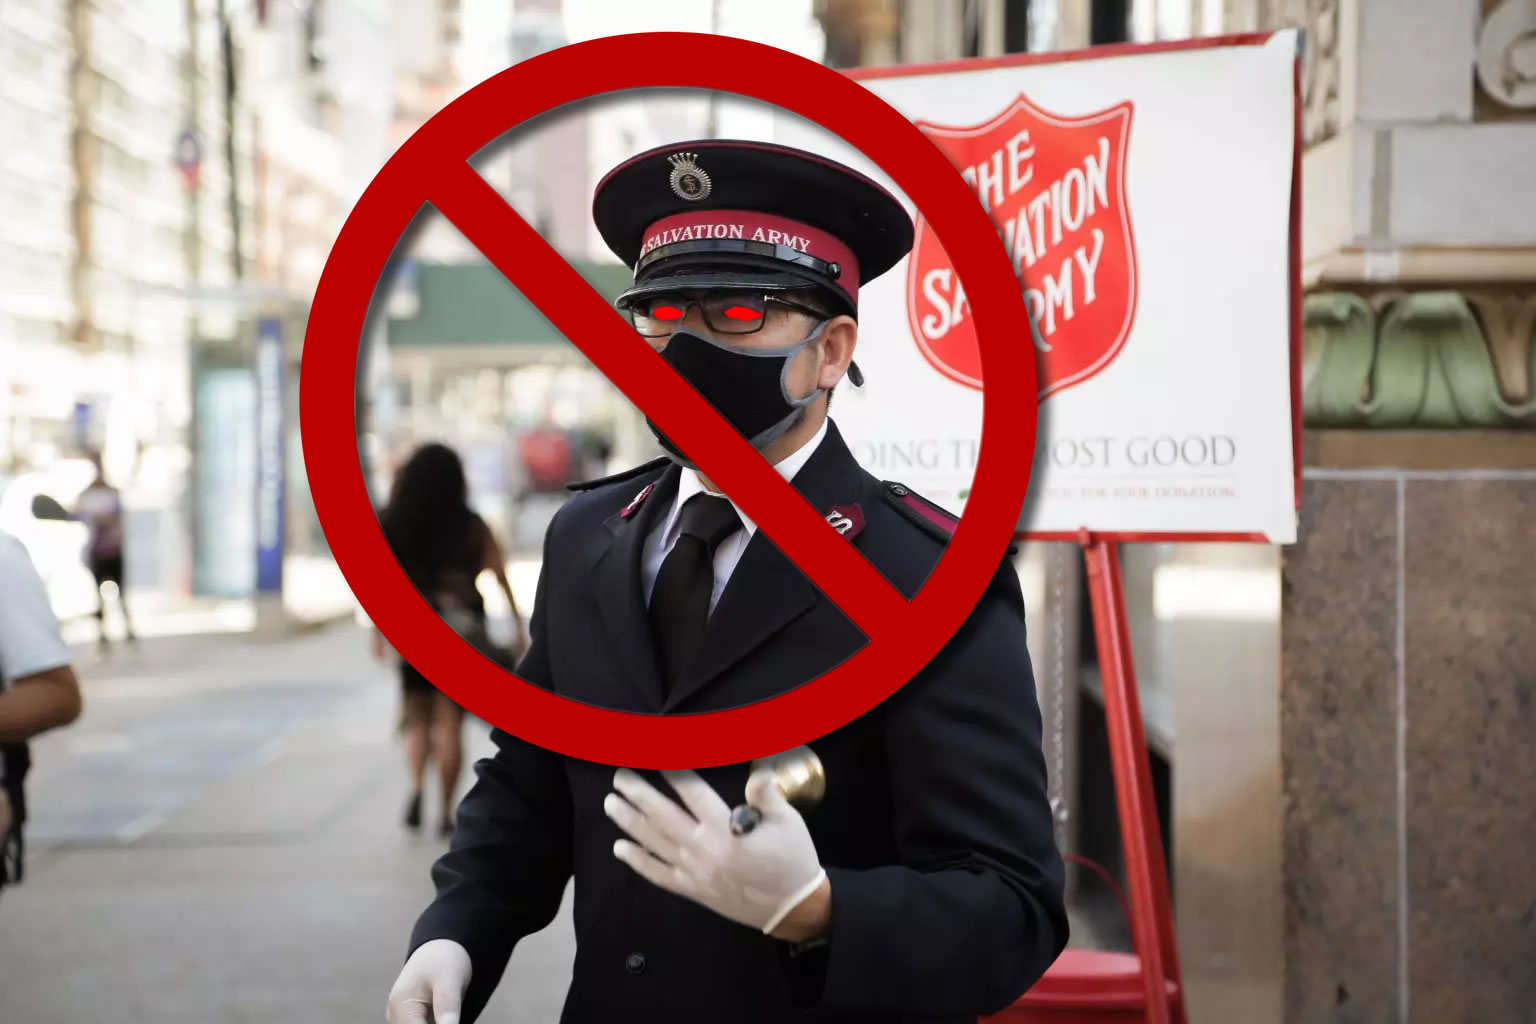 The Salvation Army kettle is corrupt.